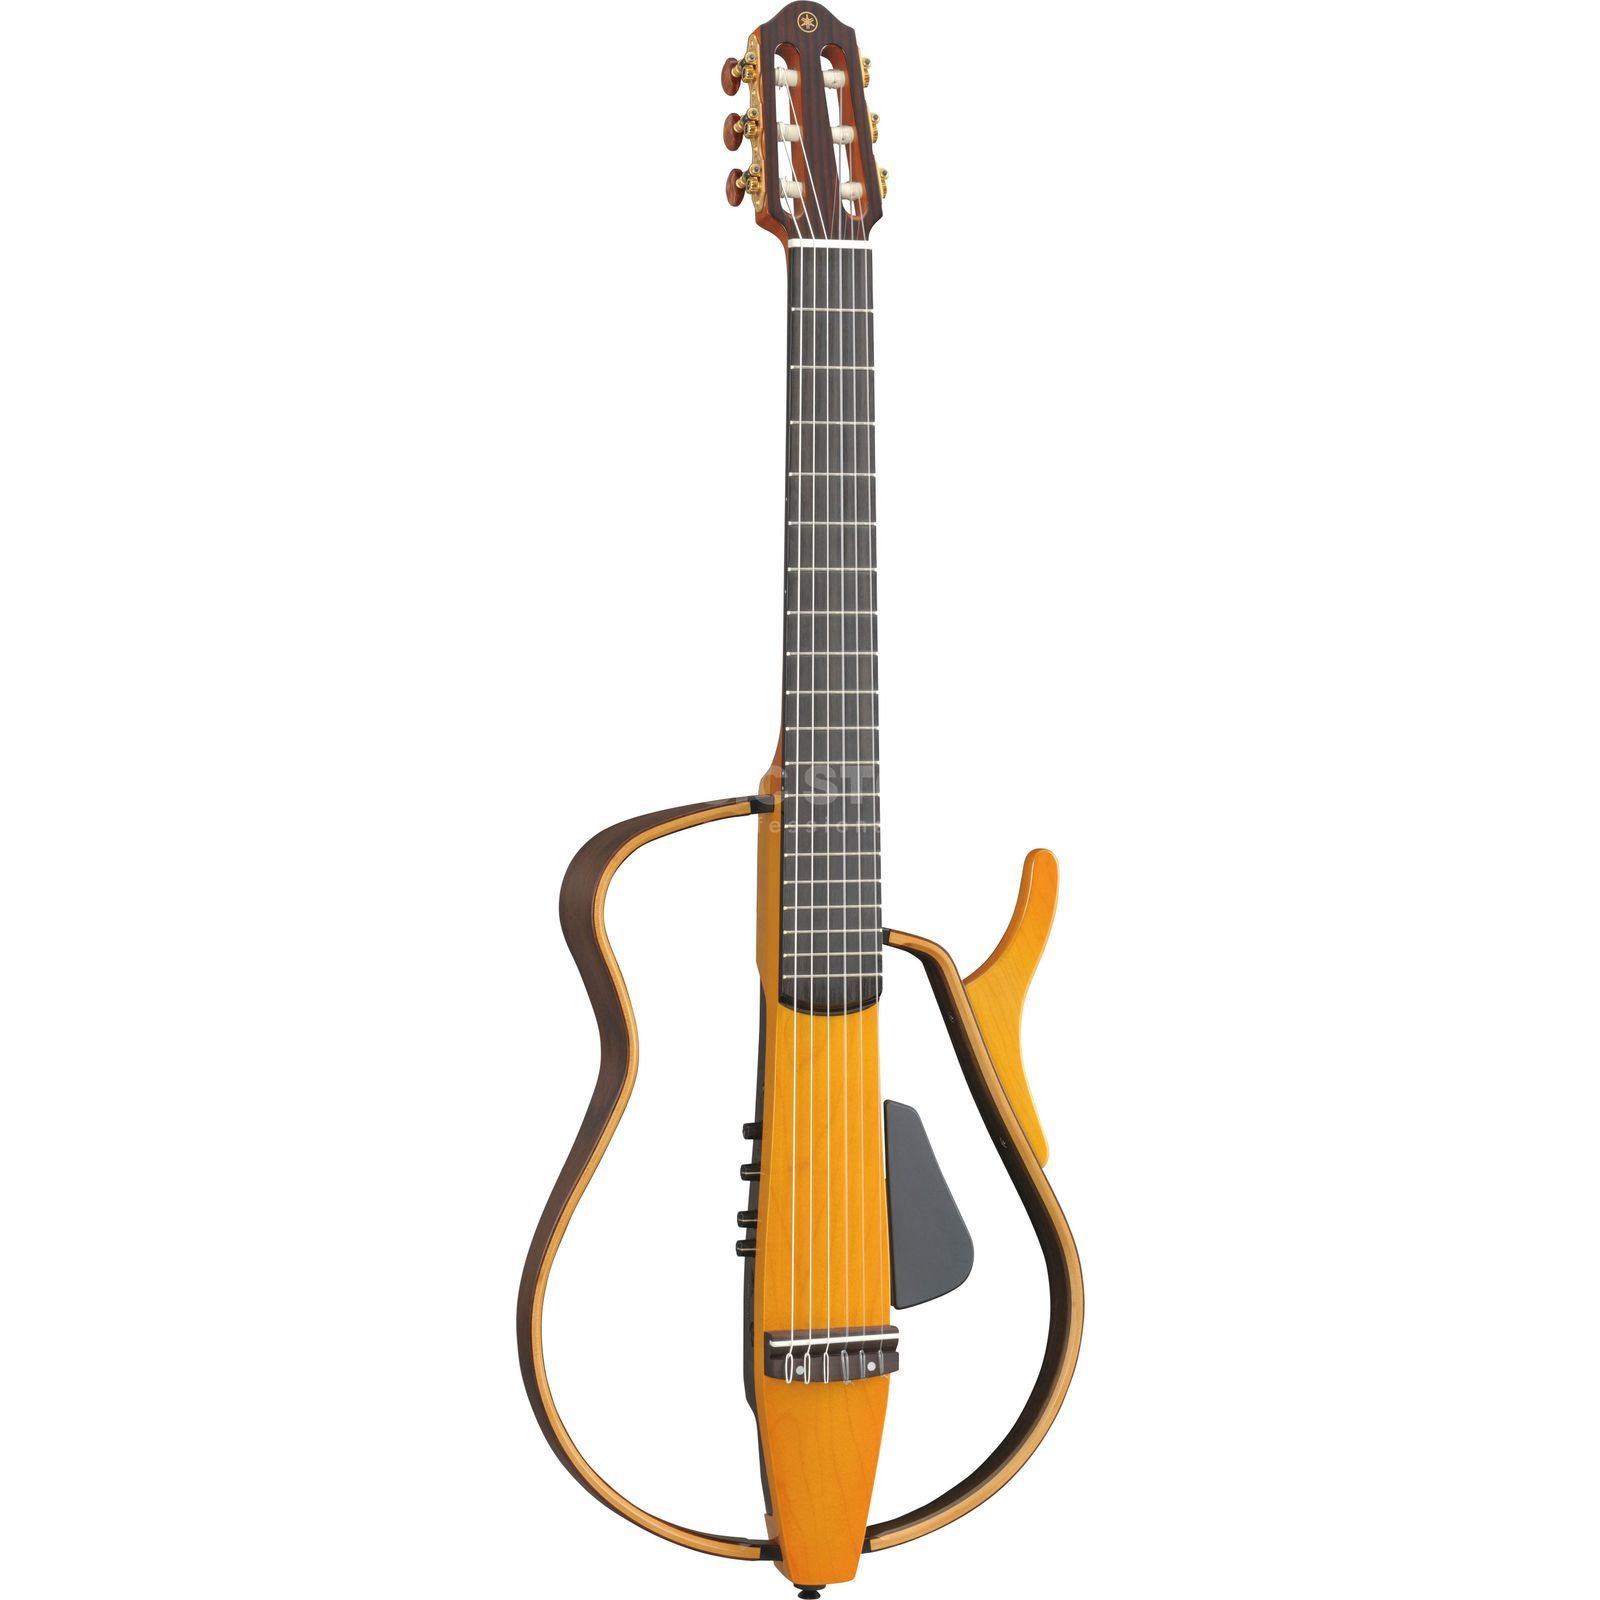 Yamaha SLG 130NW LAB w/wide Neck Silent Guitar, Nylon Strings Produktbild